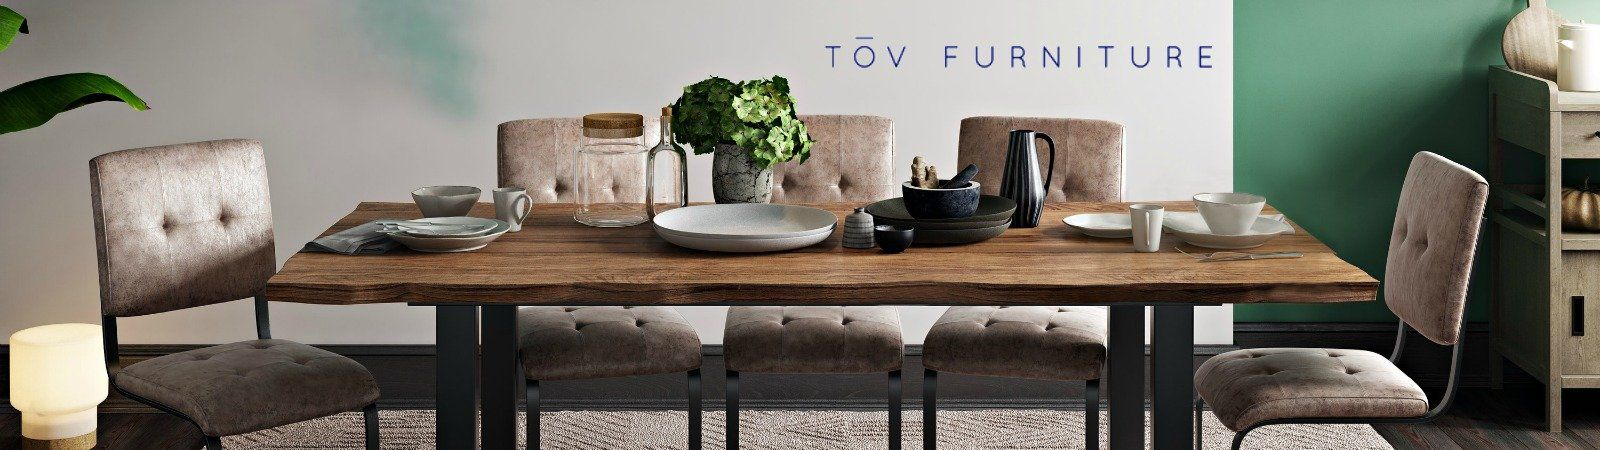 TOV Furniture is modern and stylish, available to buy online at Sportique.